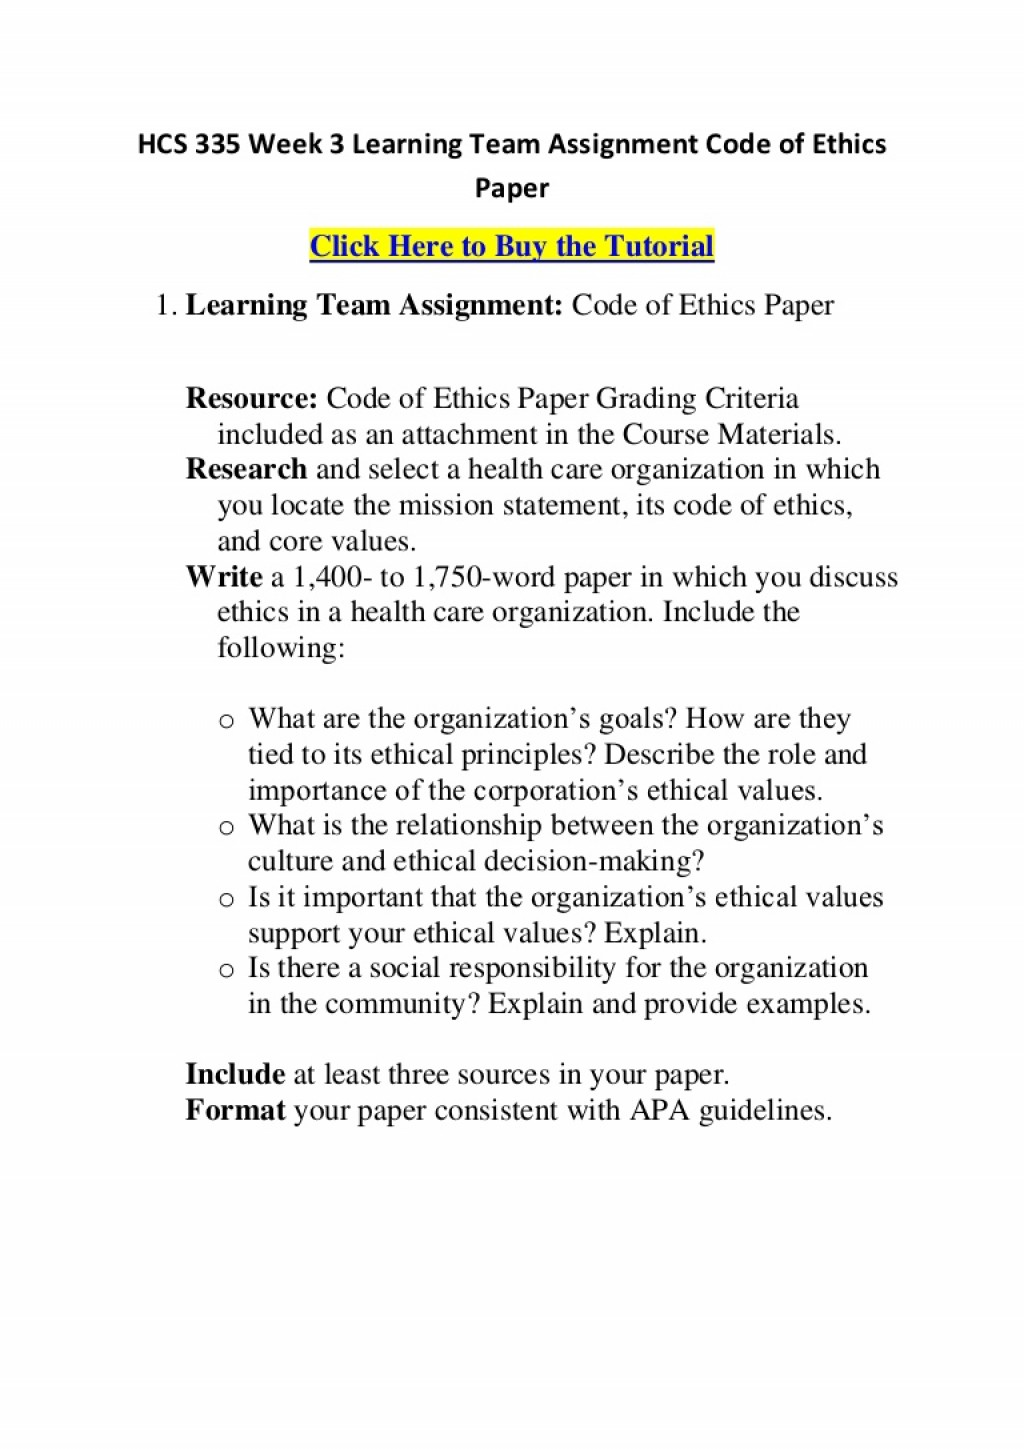 004 Hcs335week3learningteamassignmentcodeofethicspaper Phpapp01 Thumbnail Code Of Ethics Paper Essays Essay Surprising Large